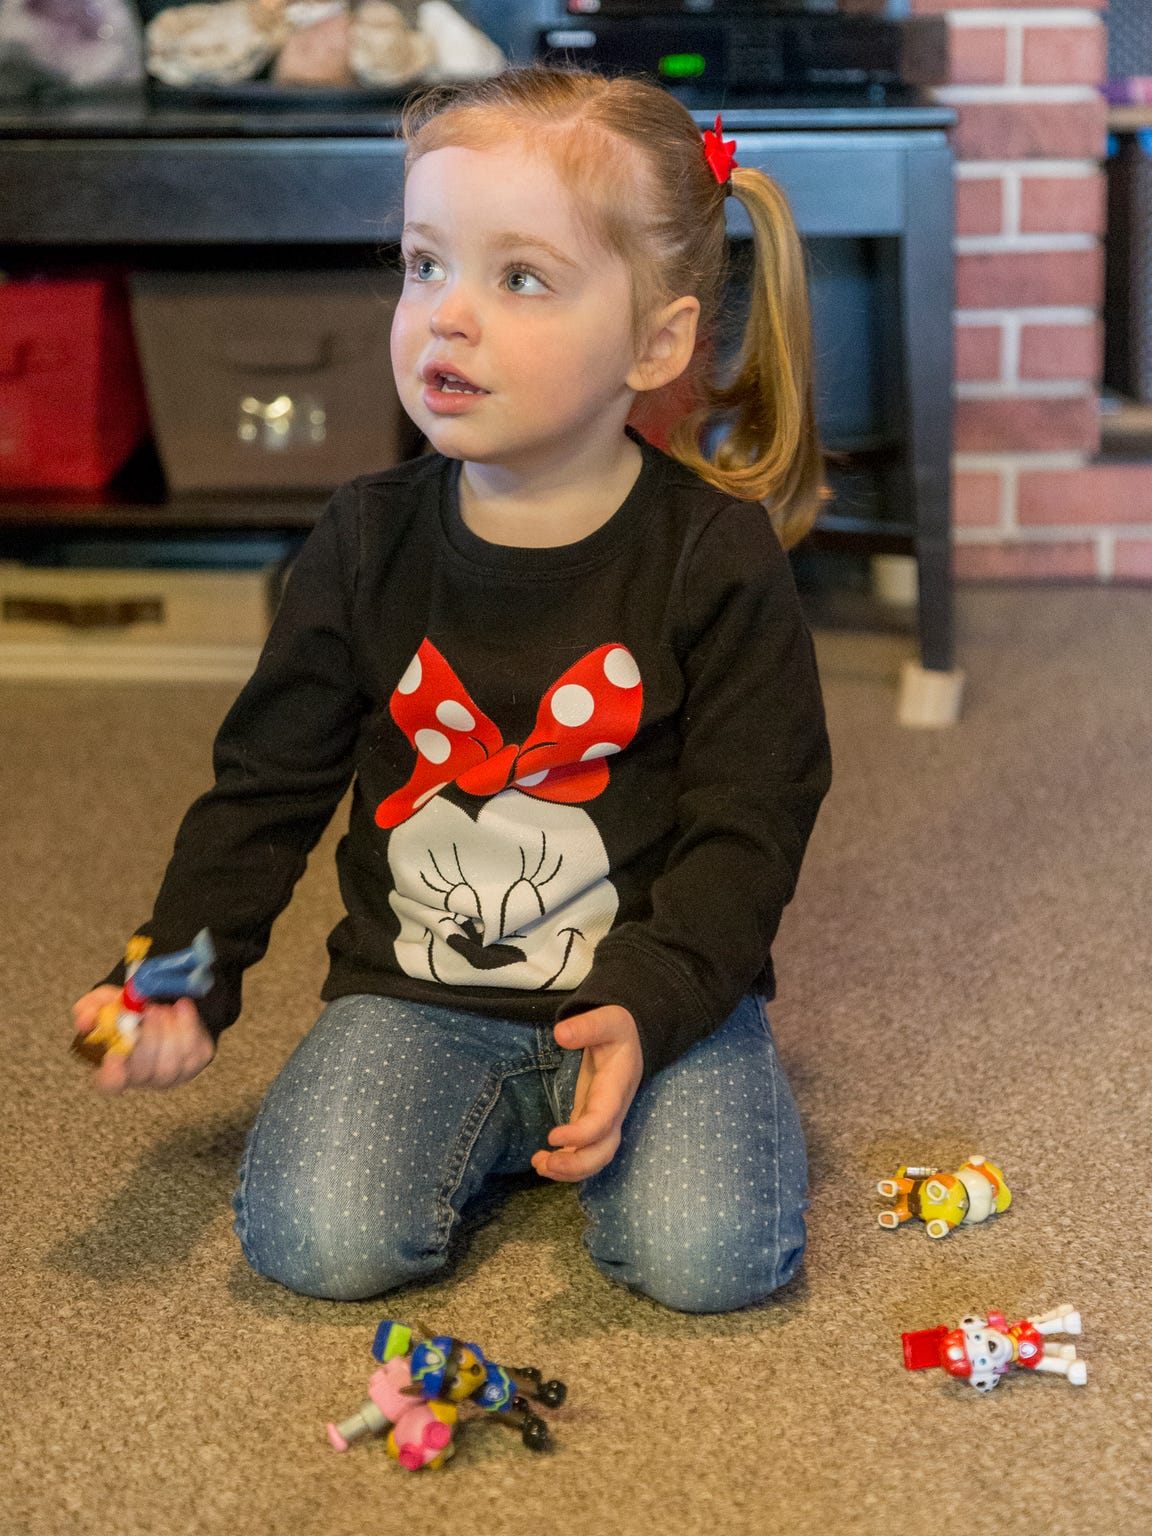 Jude Gellatly, 2, plays in the family's Freeville home.